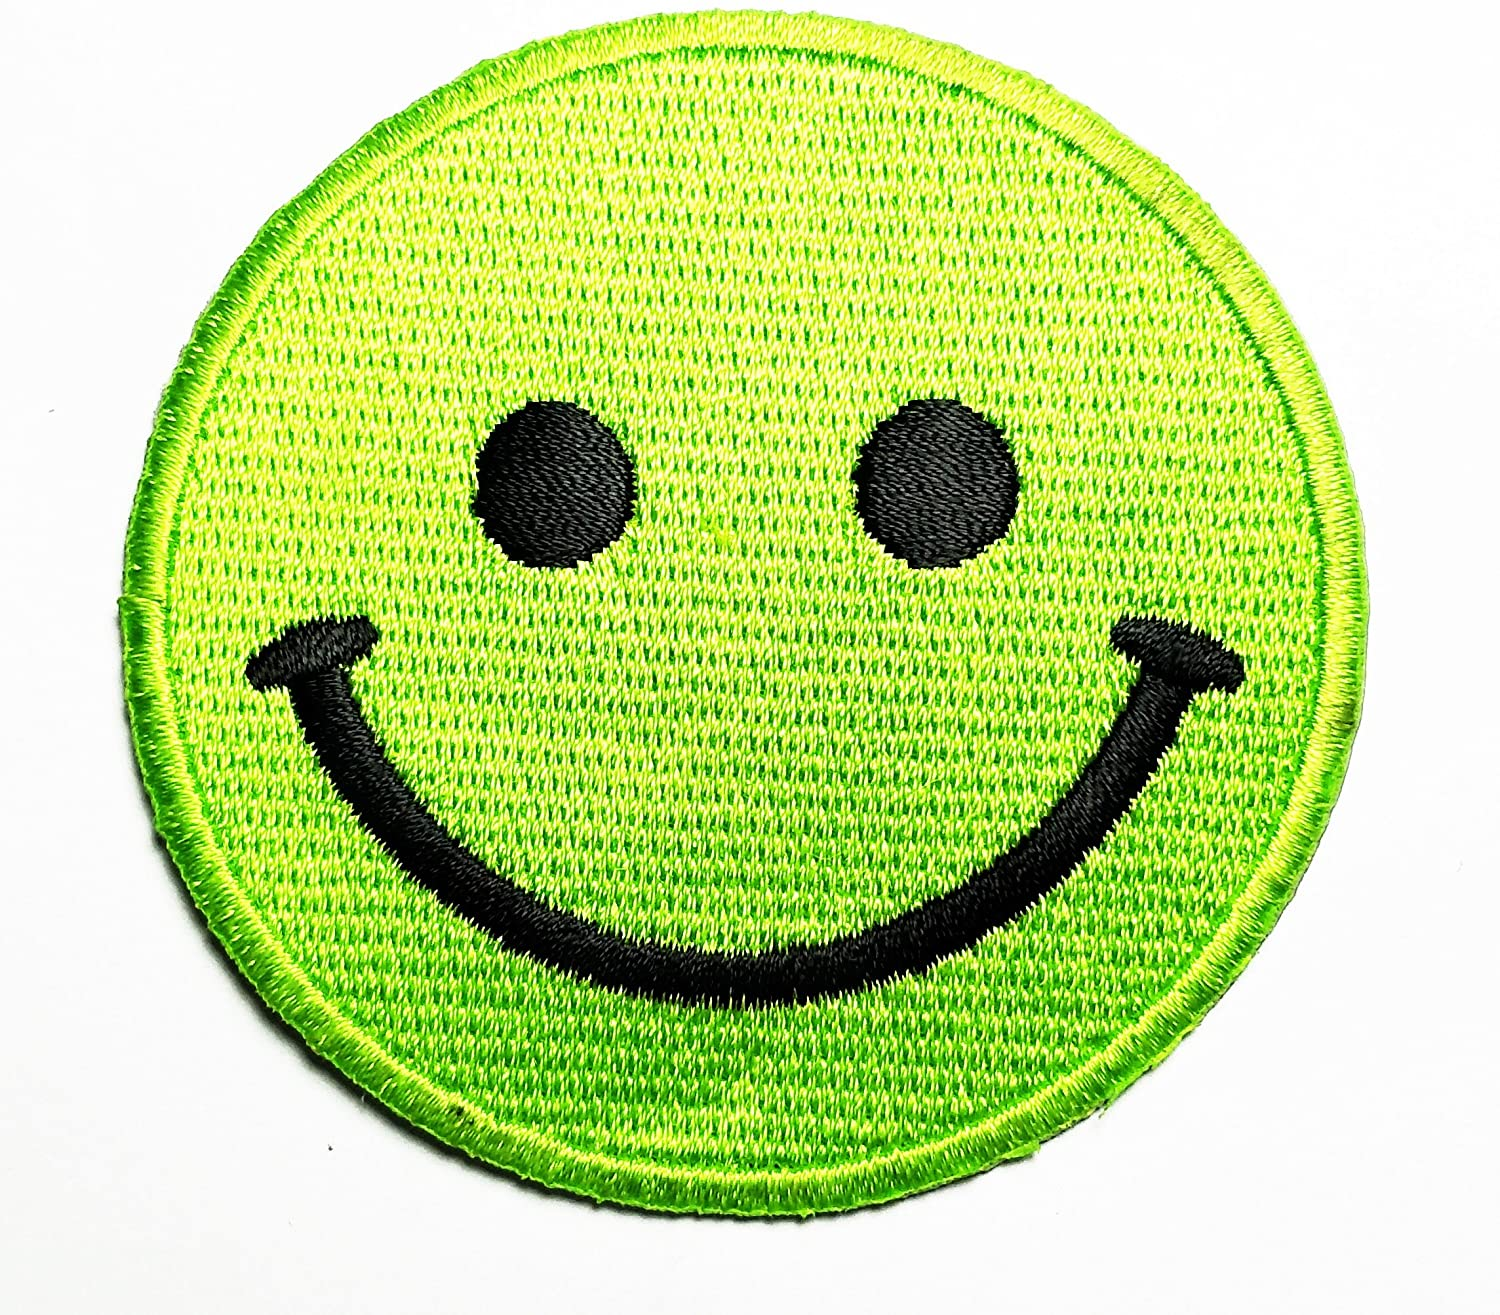 HHO Green Smile face Emoji Patch Embroidered DIY Patches, Cute Applique Sew Iron on Kids Craft Patch for Bags Jackets Jeans Clothes